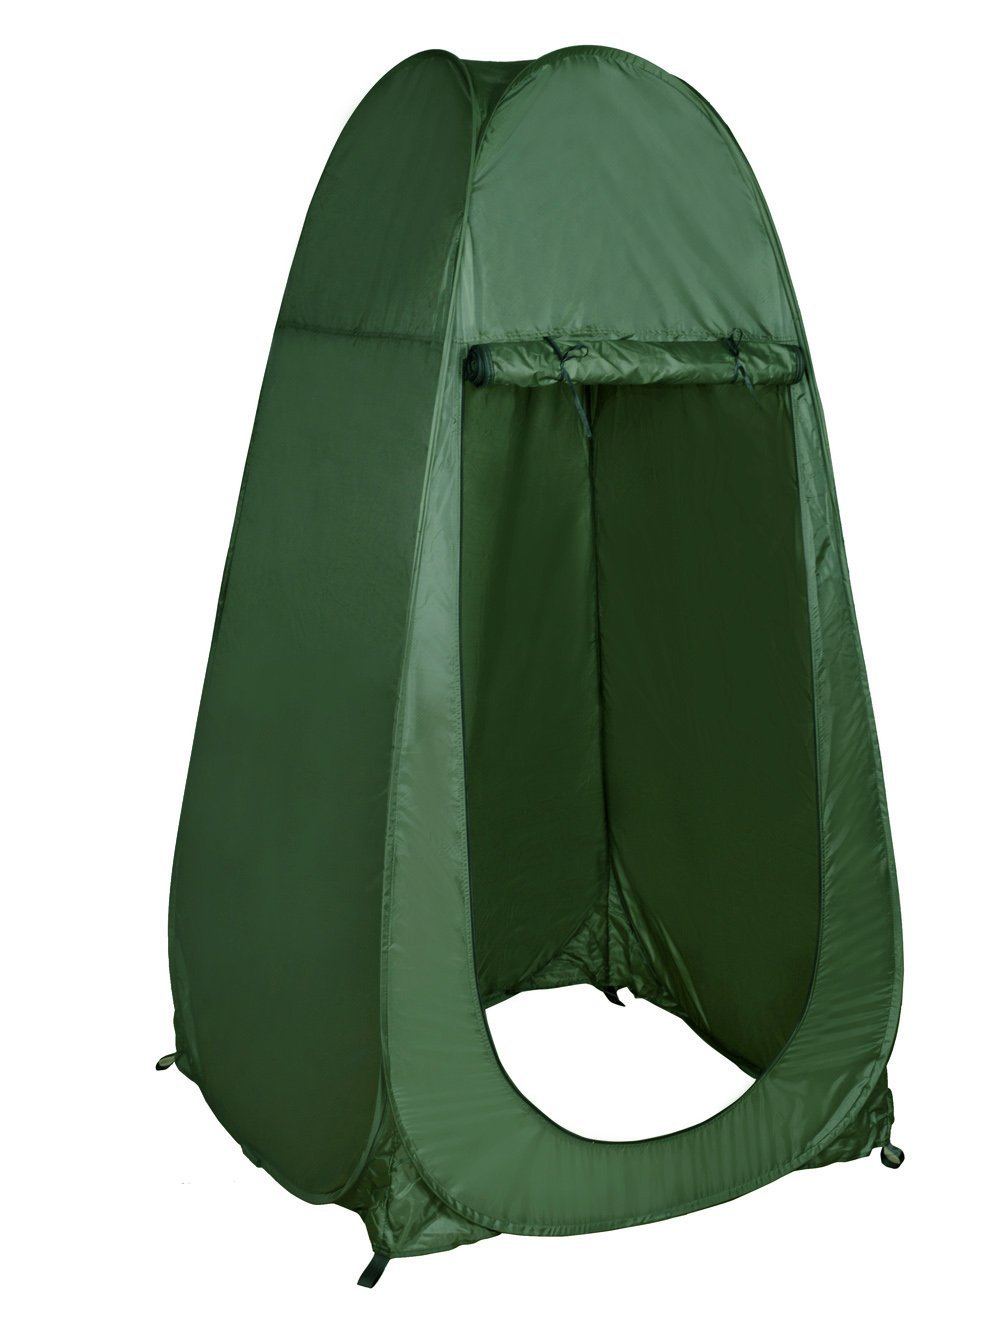 Click here to buy CALHOME Portable Outdoor Green Pop Up Tent Camping Shower Privacy Toilet Changing Room... by CALHOME.